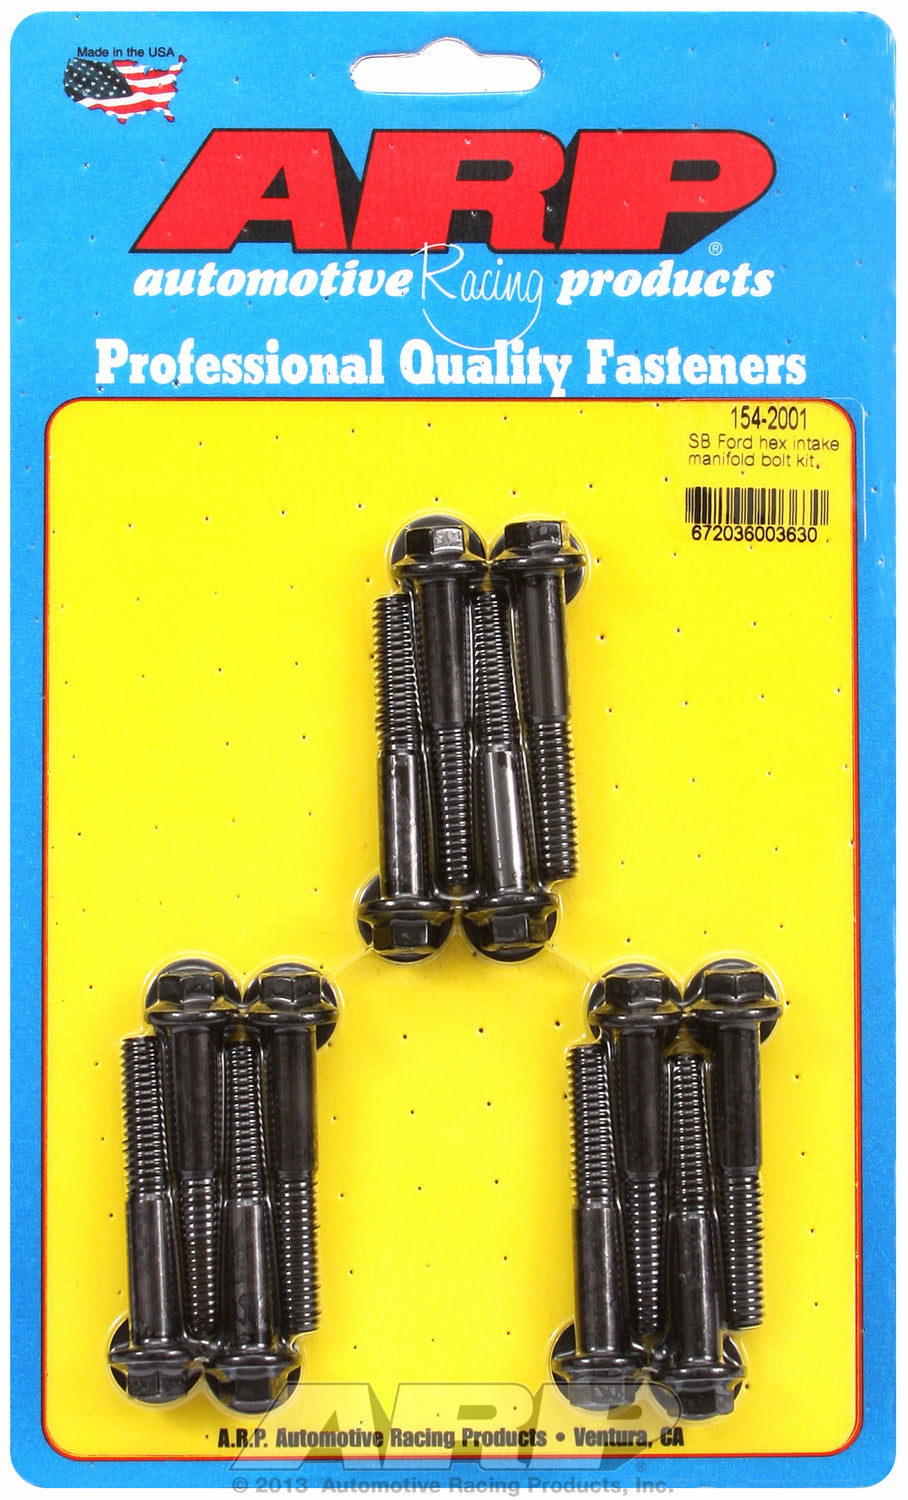 Hex Head Black Oxide Intake Manifold Bolts for Ford 260-289-302, 351W, uses 3/8˝ socket